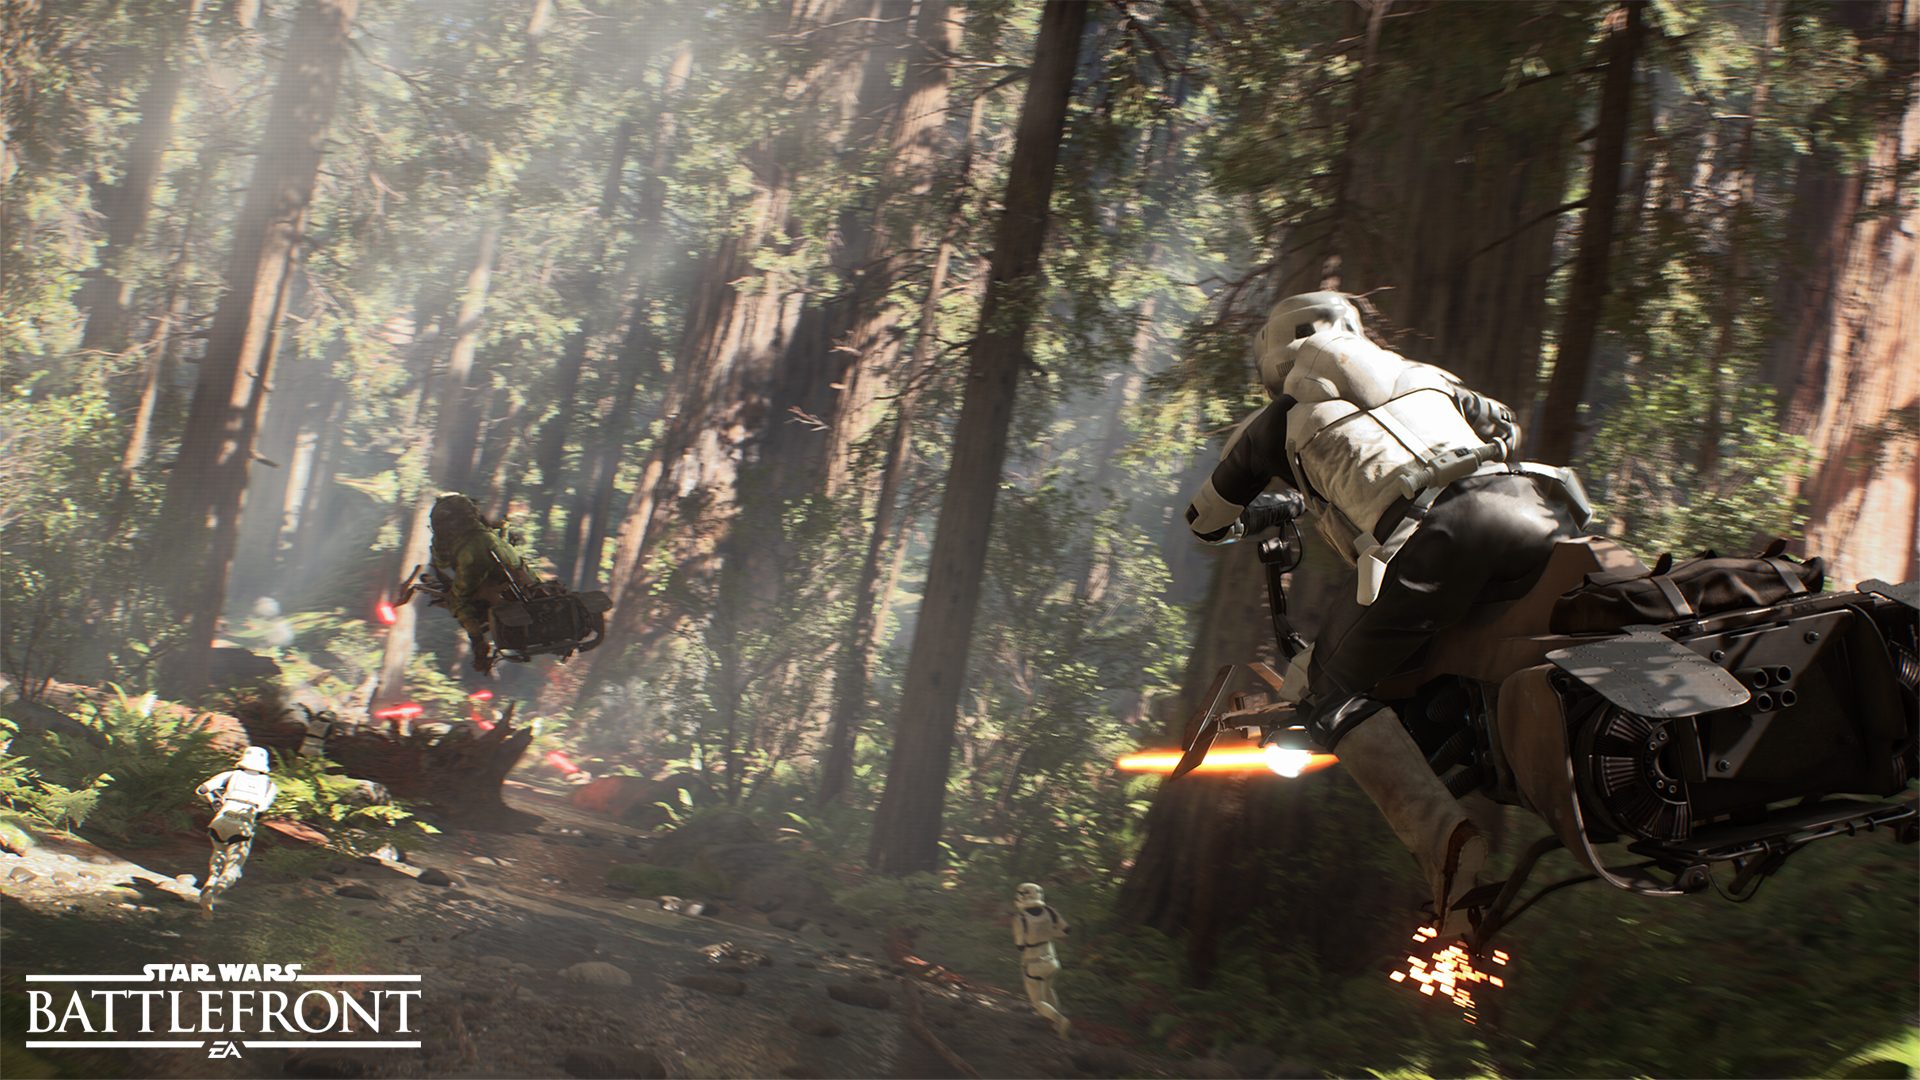 star wars battlefront screeny (5)